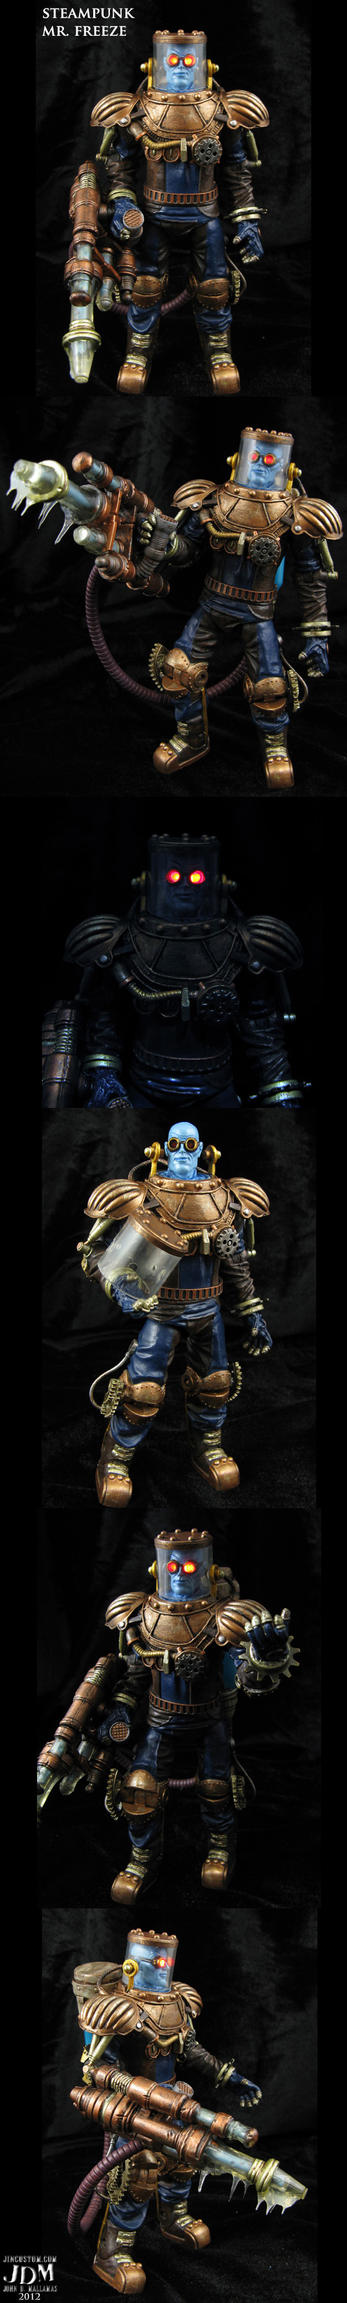 Steampunk DC Mr Freeze action figure by Jin-Saotome